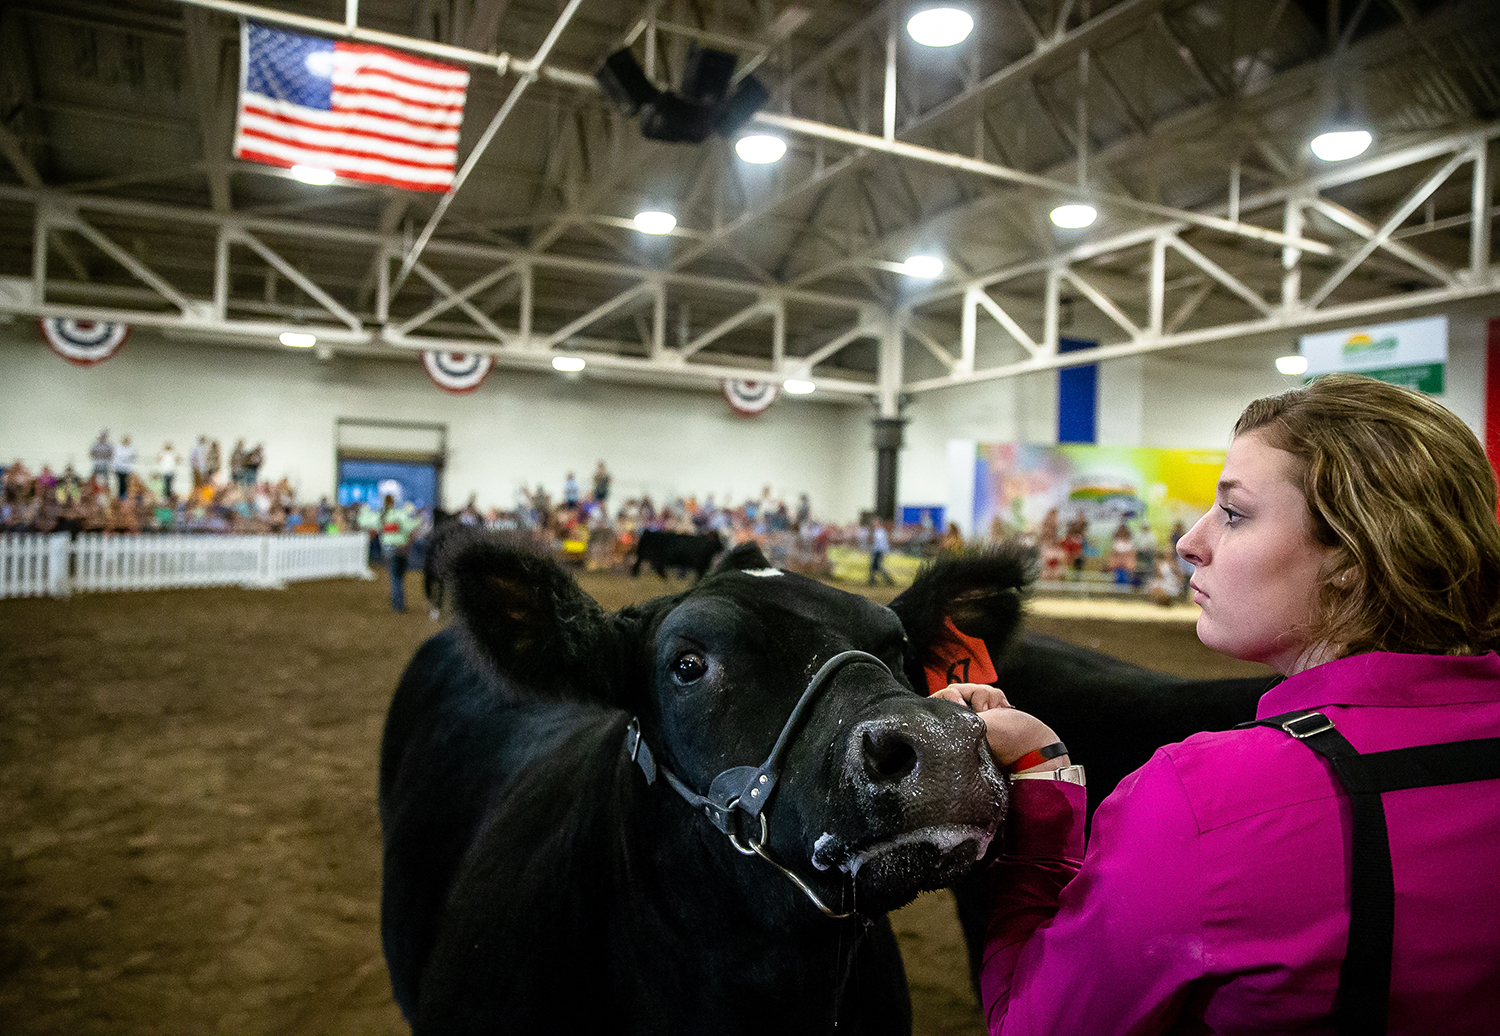 Abby Kuppler brings her steer into the show floor during the Parade of Champions at the Livestock Center during the Illinois State Fair at the Illinois State Fairgrounds, Saturday, Aug. 11, 2018, in Springfield, Ill. [Justin L. Fowler/The State Journal-Register]